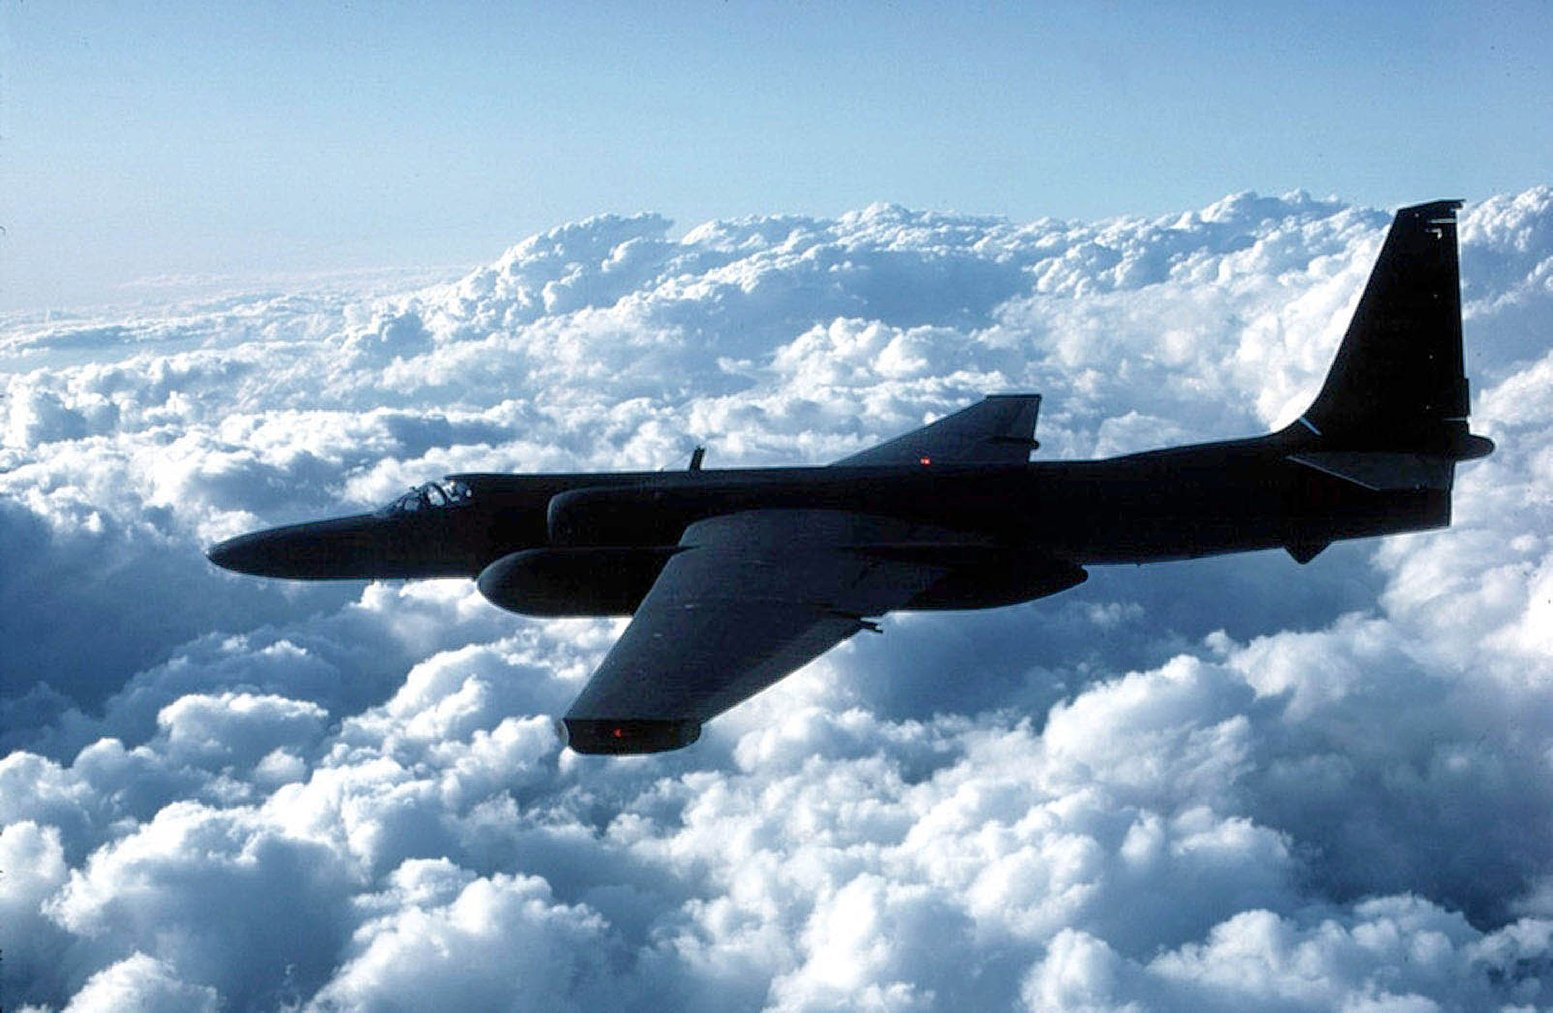 Reports say a U-2 spy plane's flight across Southern California last week may have played a part in a partial airport shutdown last week. (U.S. Air Force via Getty Images)